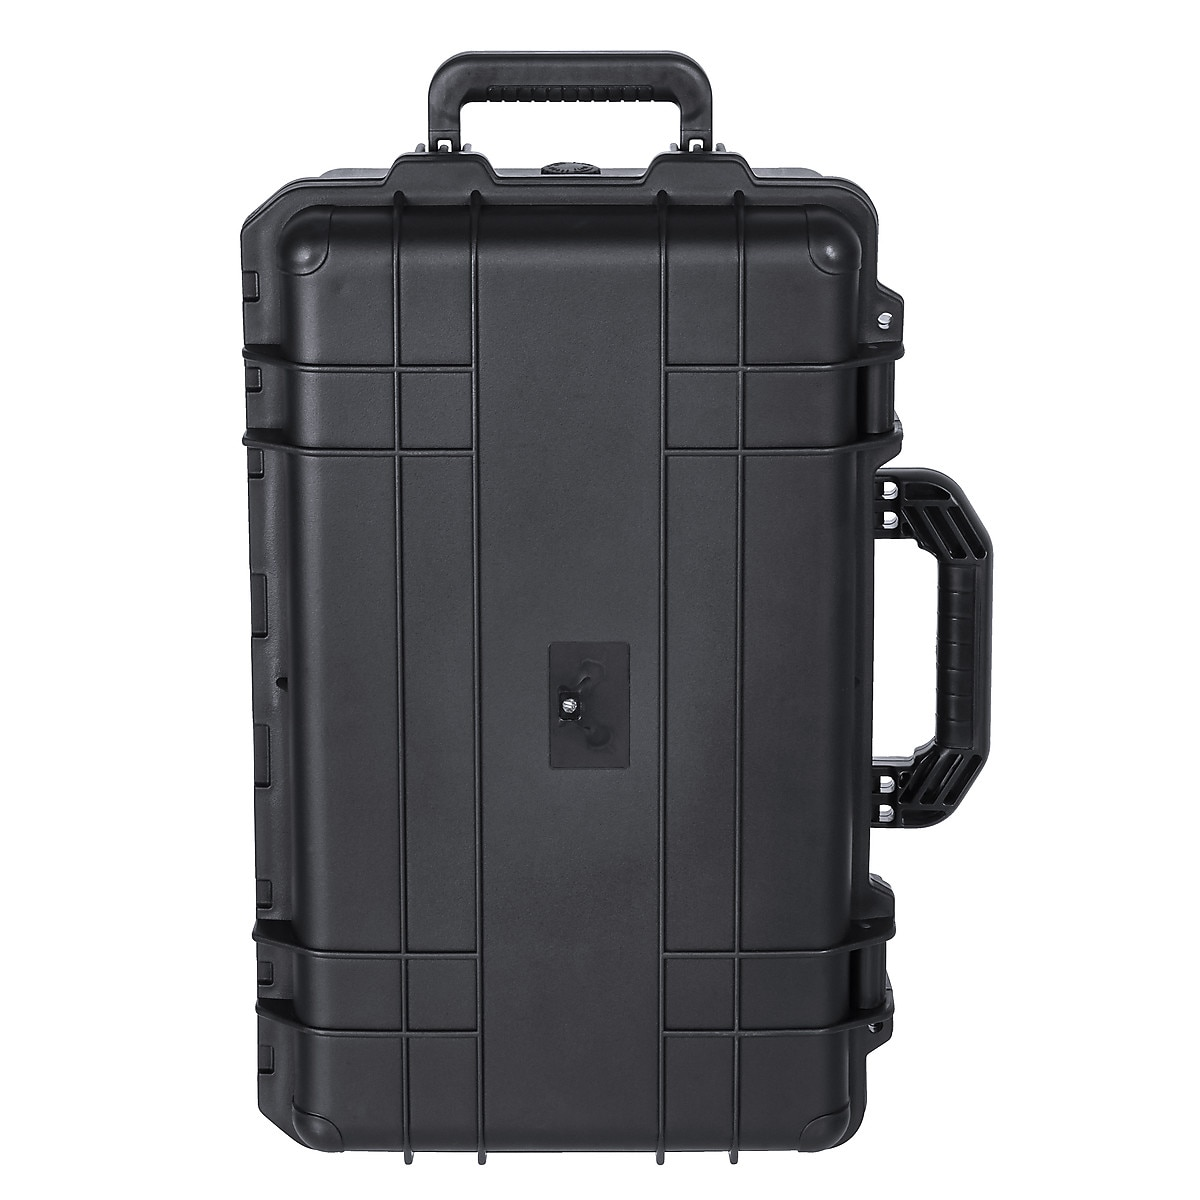 Instrument Trolley Case with Telescopic Handle